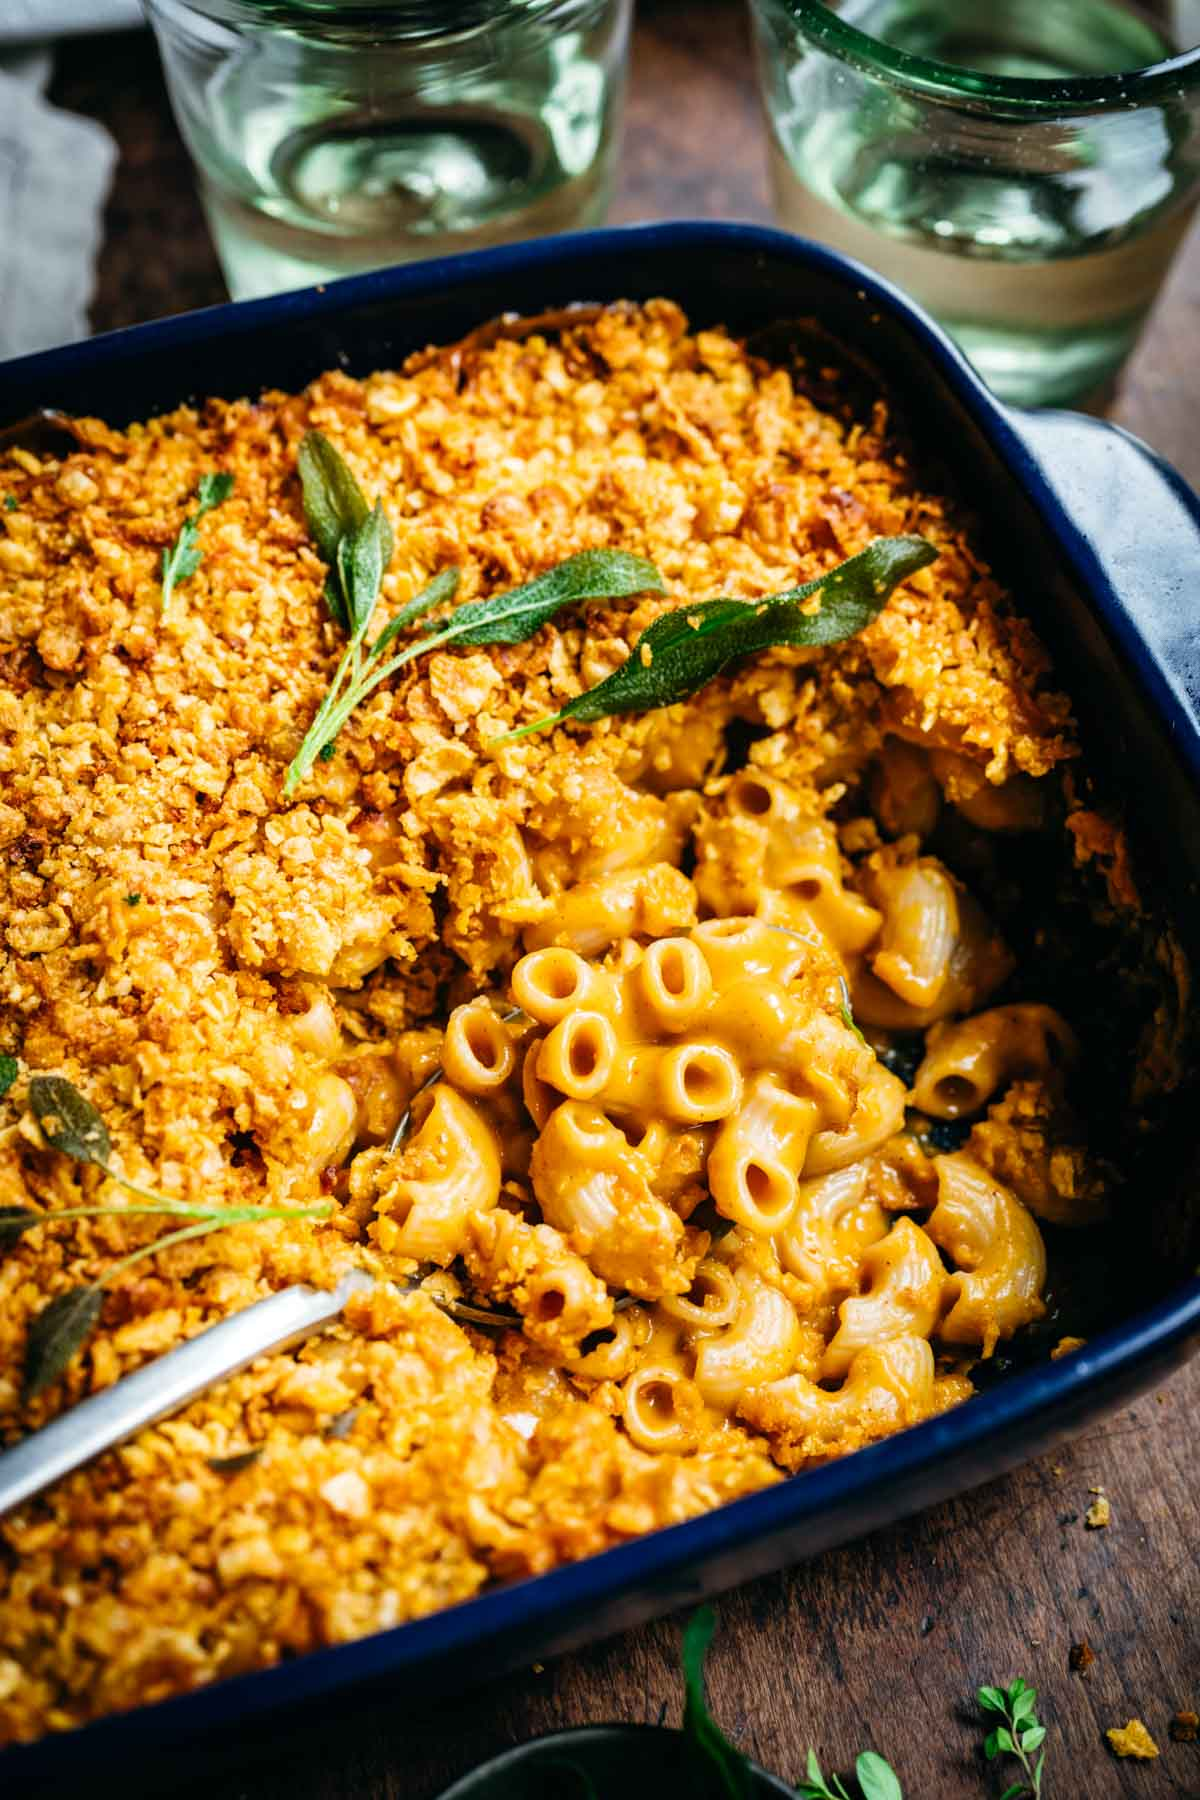 Overhead view of macaroni and cheese in a blue baking dish.